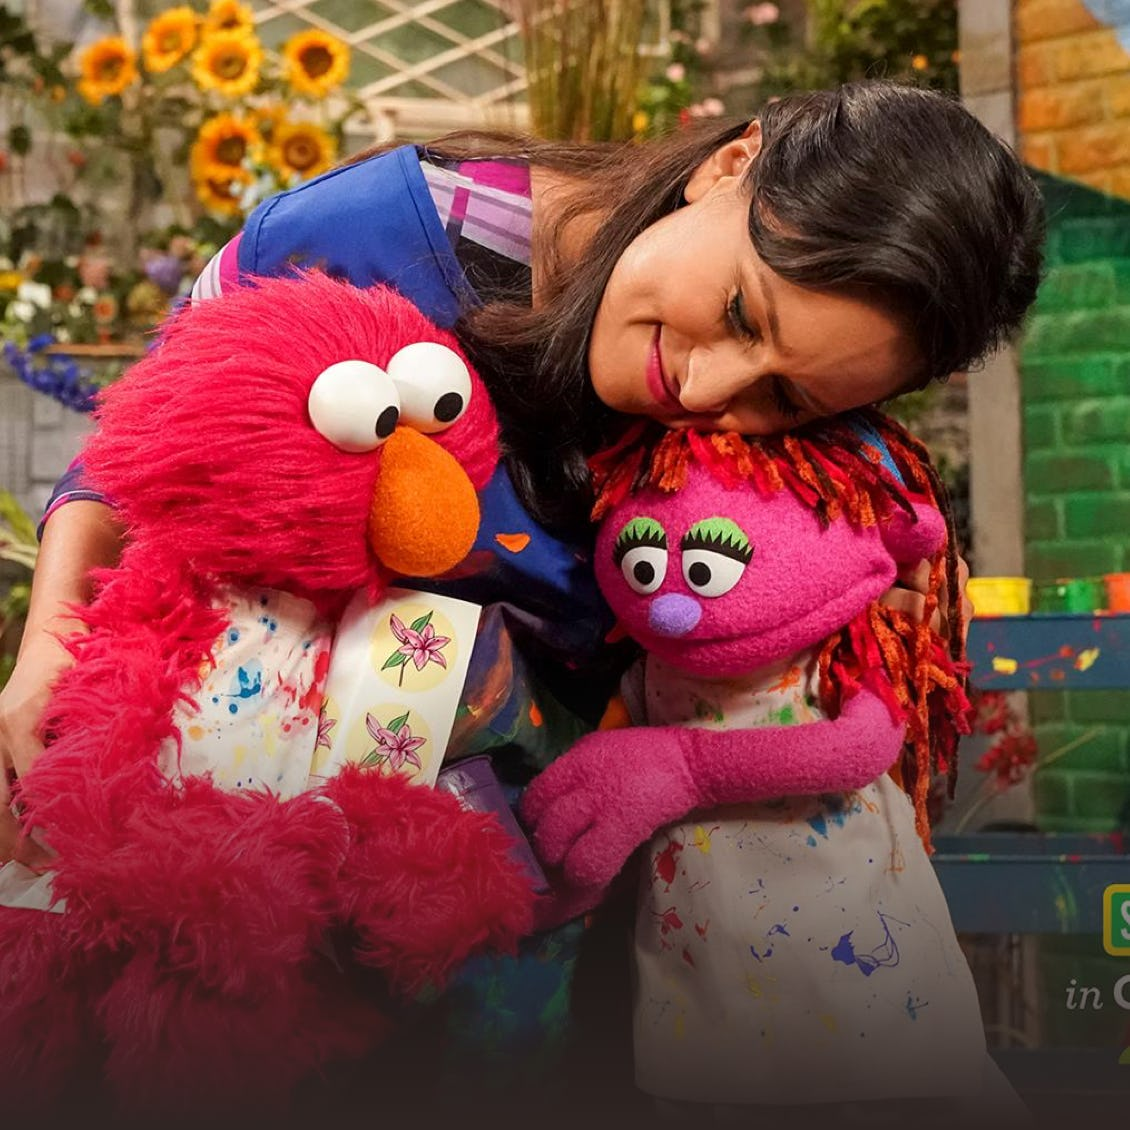 a woman huging Elmo and Abby Cadabby